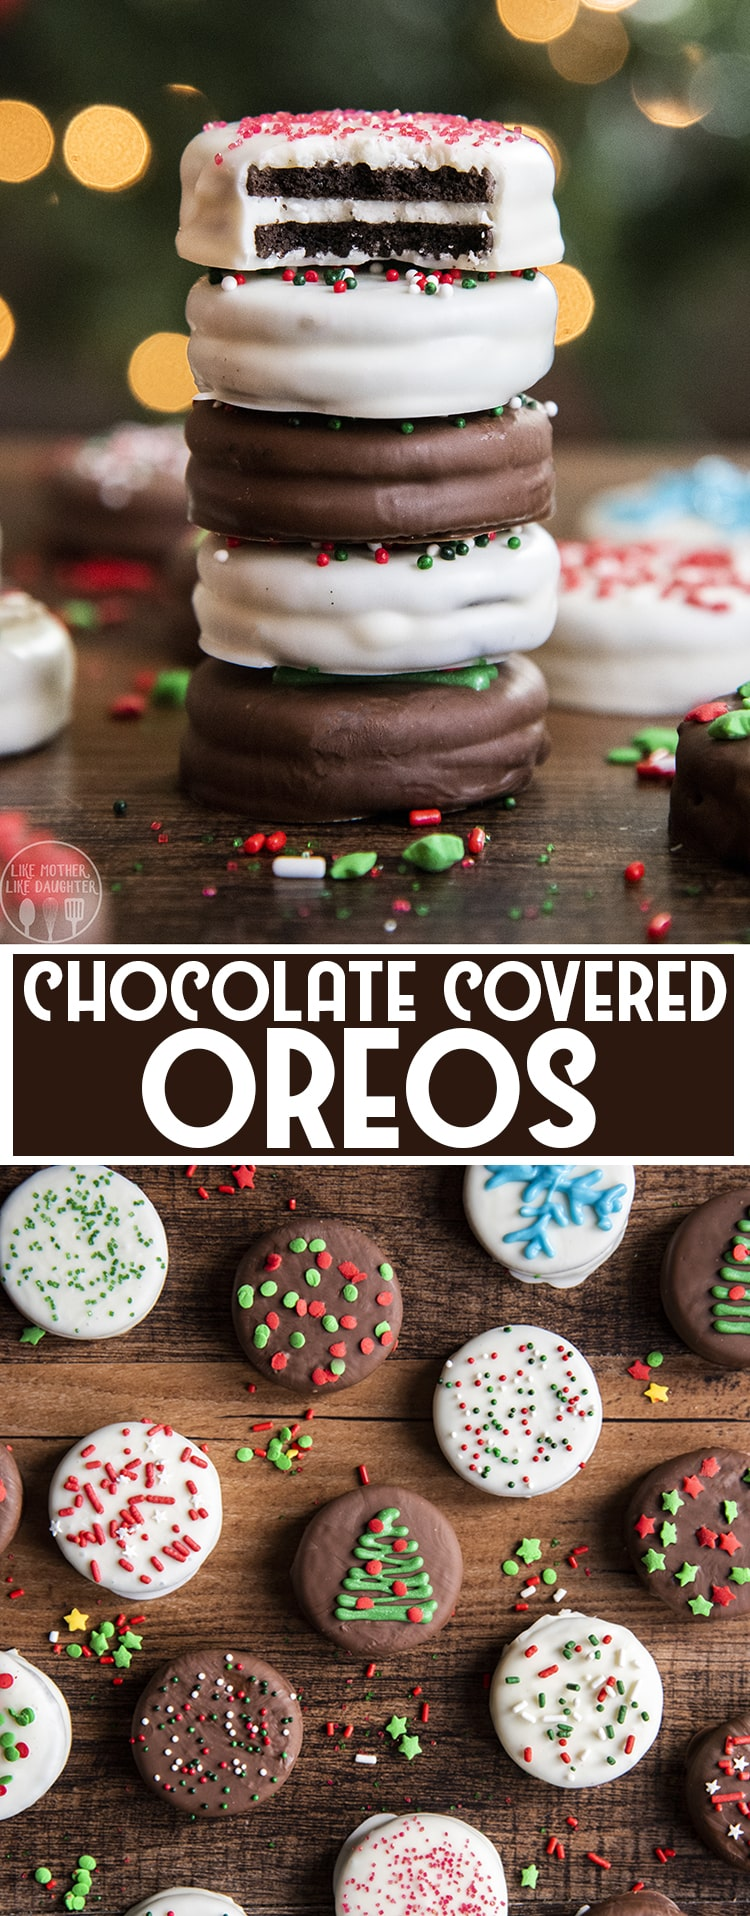 Chocolate covered Oreos are a tasty three ingredient treat that is so fun for a simple dessert, or party food. They can be decorated for a variety of different holidays!